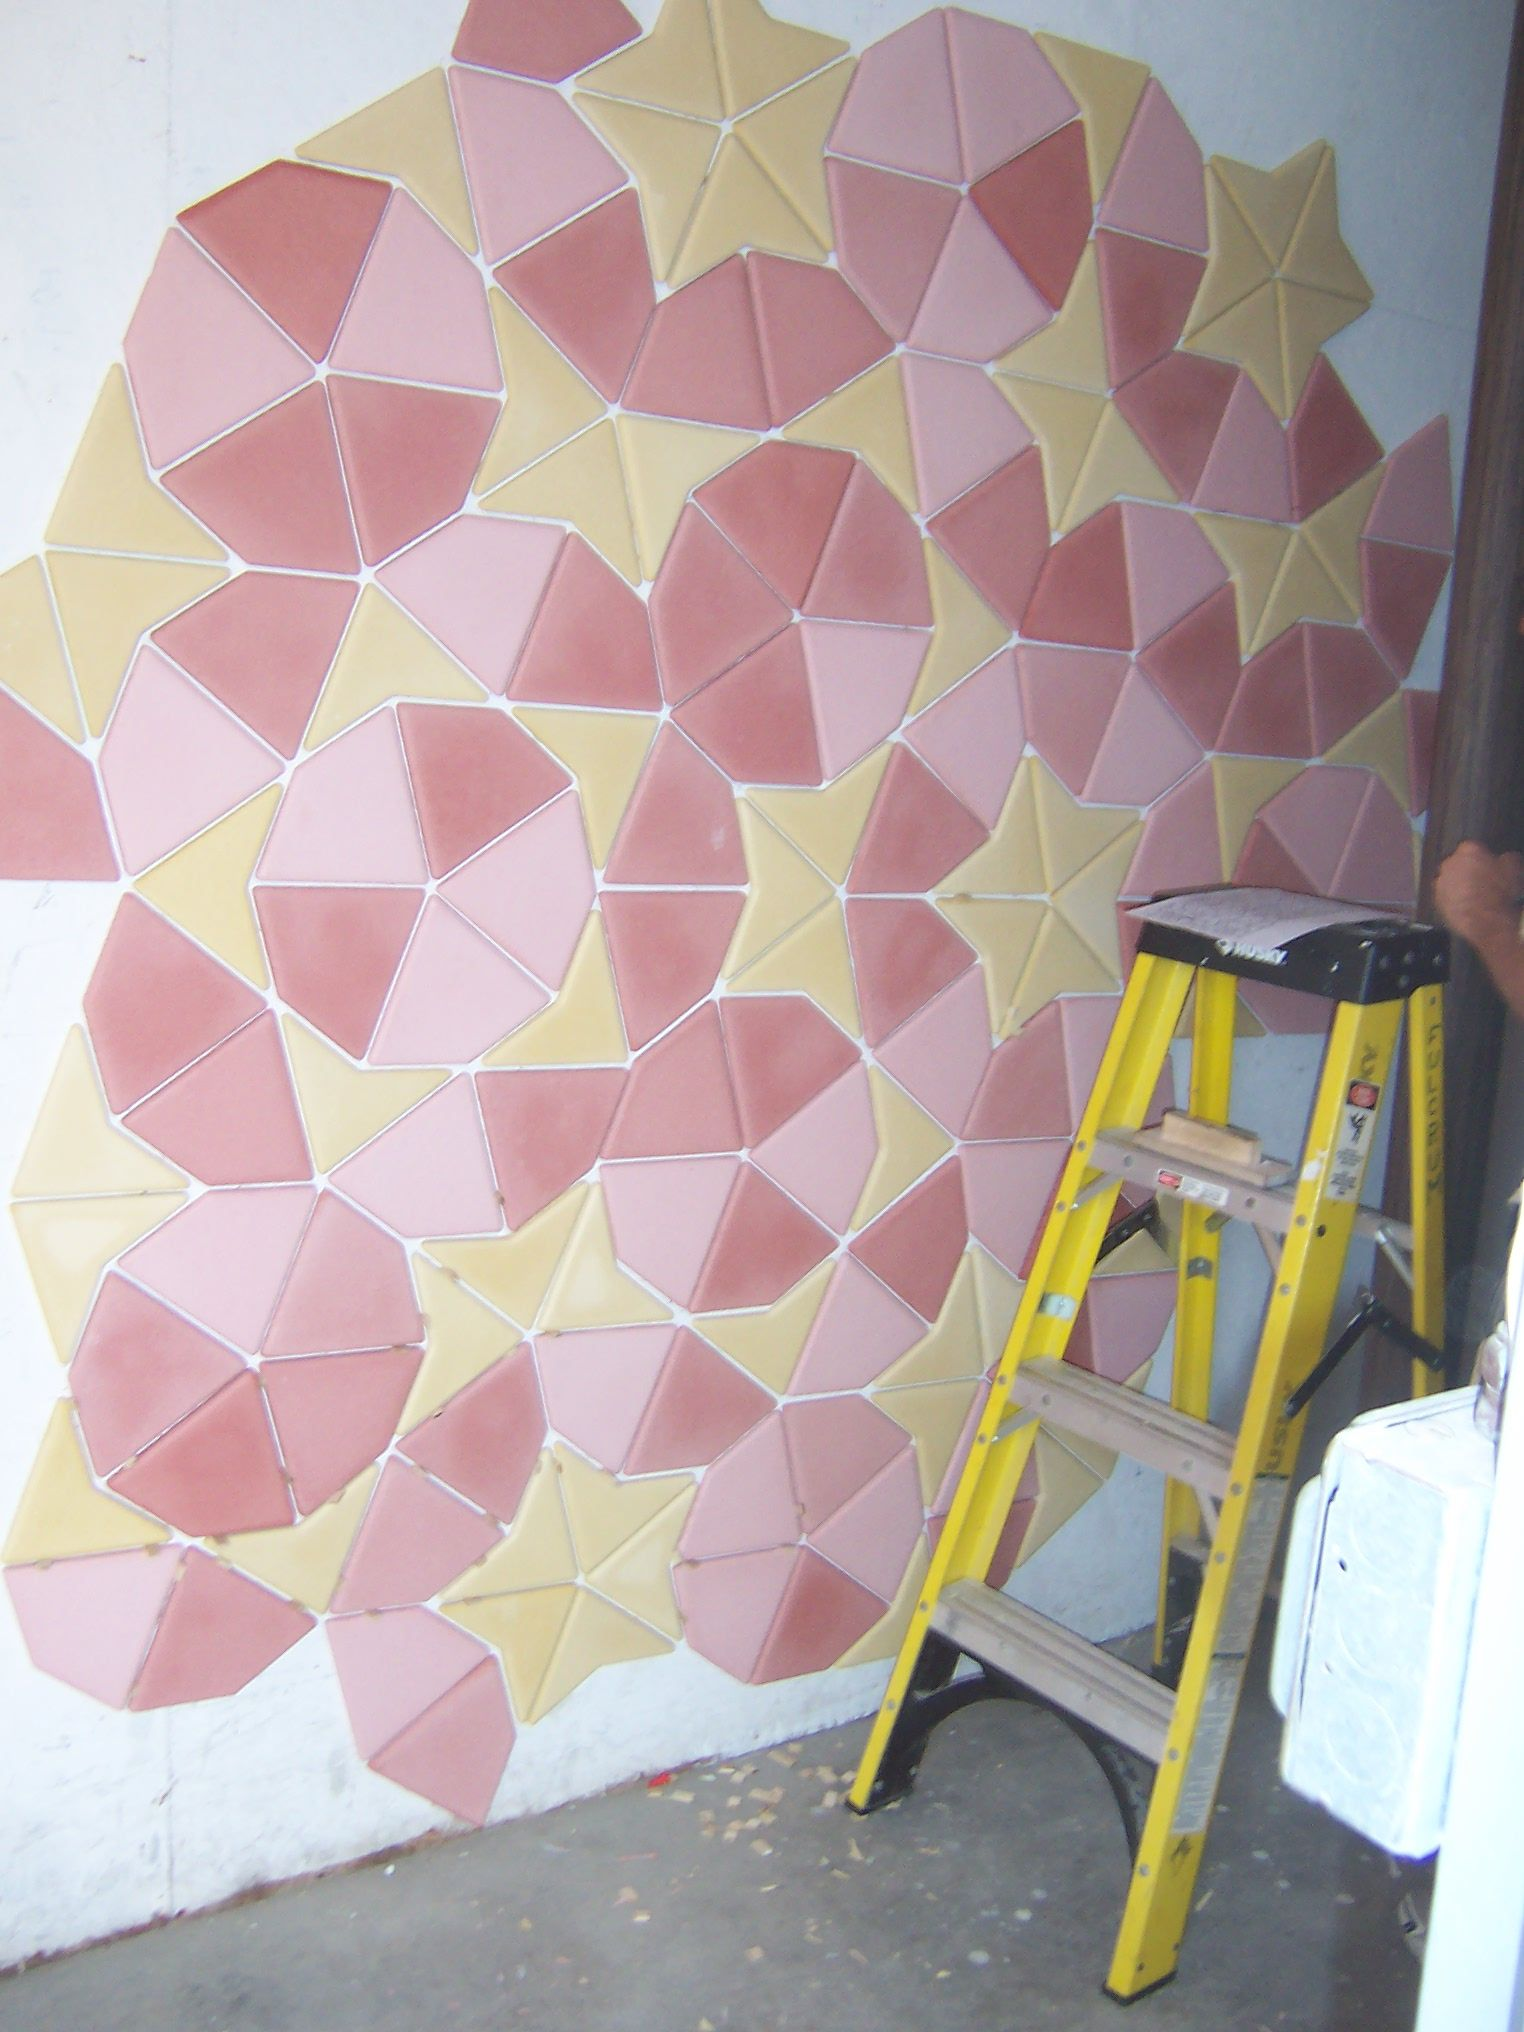 Penrose tiling we produce these tiles by cnc cutting the shapes penrose tiling we produce these tiles by cnc cutting the shapes defined by sir roger dailygadgetfo Images